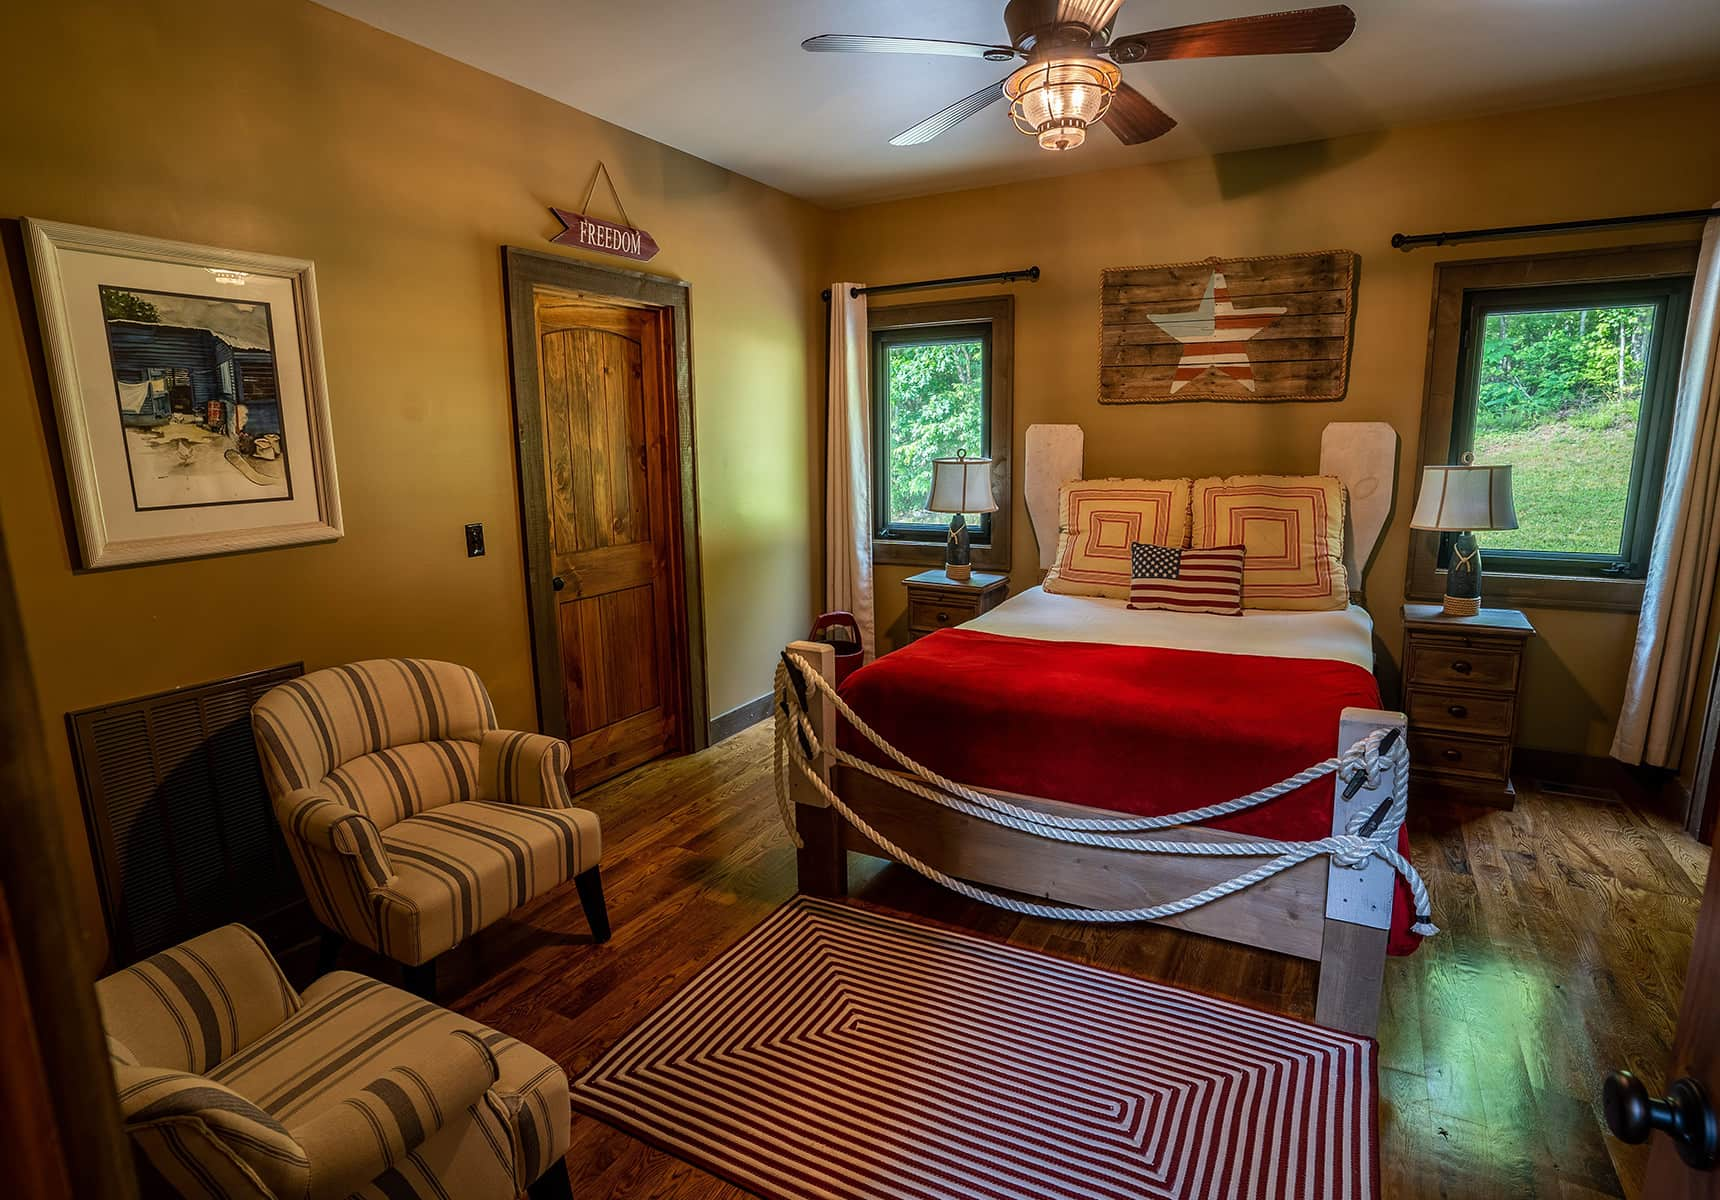 Boathouse bedroom at a West Virginia Lodge